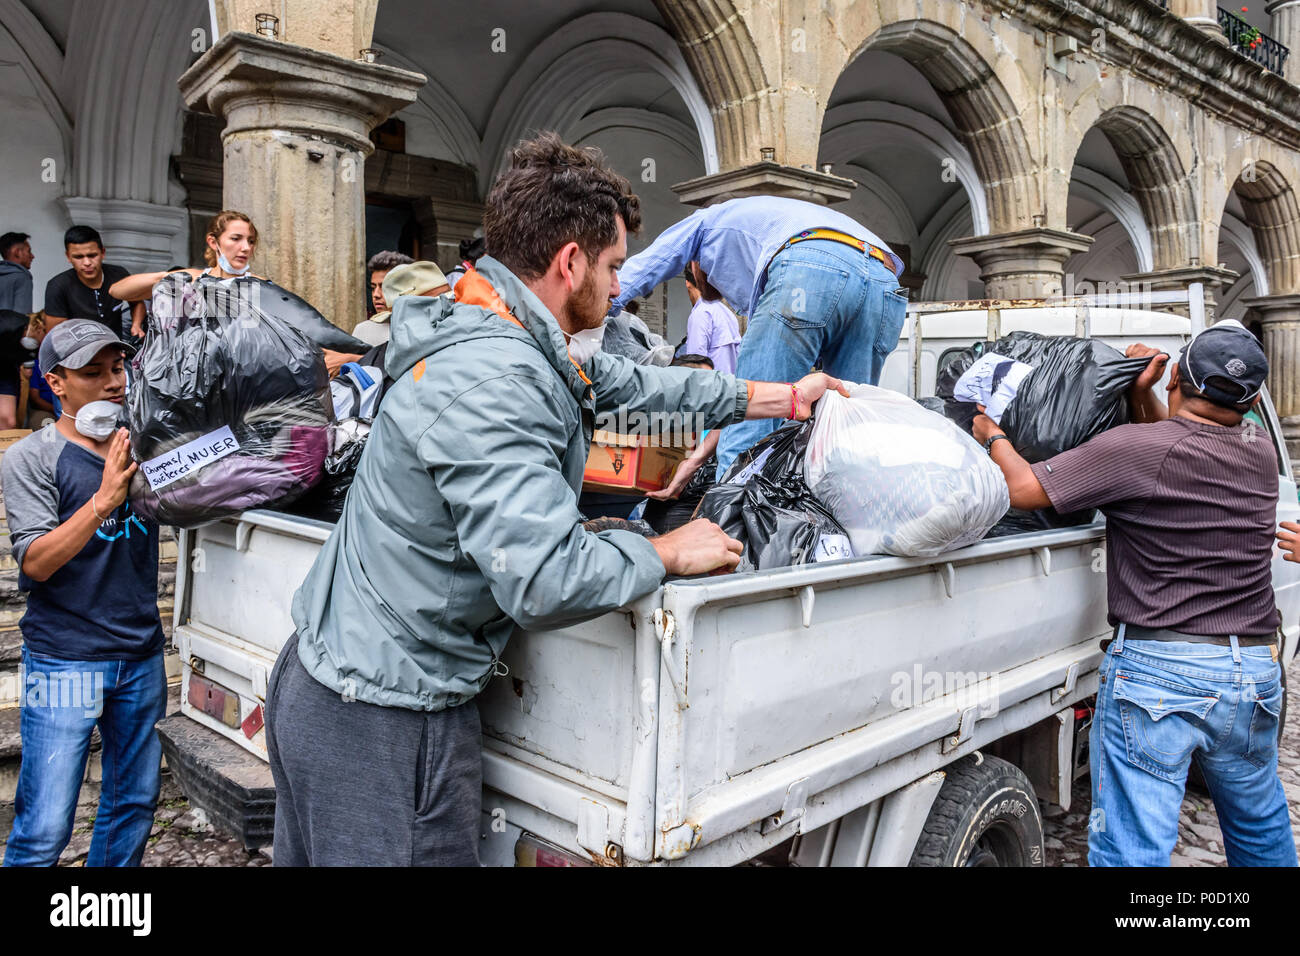 Antigua,, Guatemala -  June 5, 2018:  Volunteers load humanitarian aid supplies to take to area affected by eruption of Fuego (fire) volcano on June 3 - Stock Image